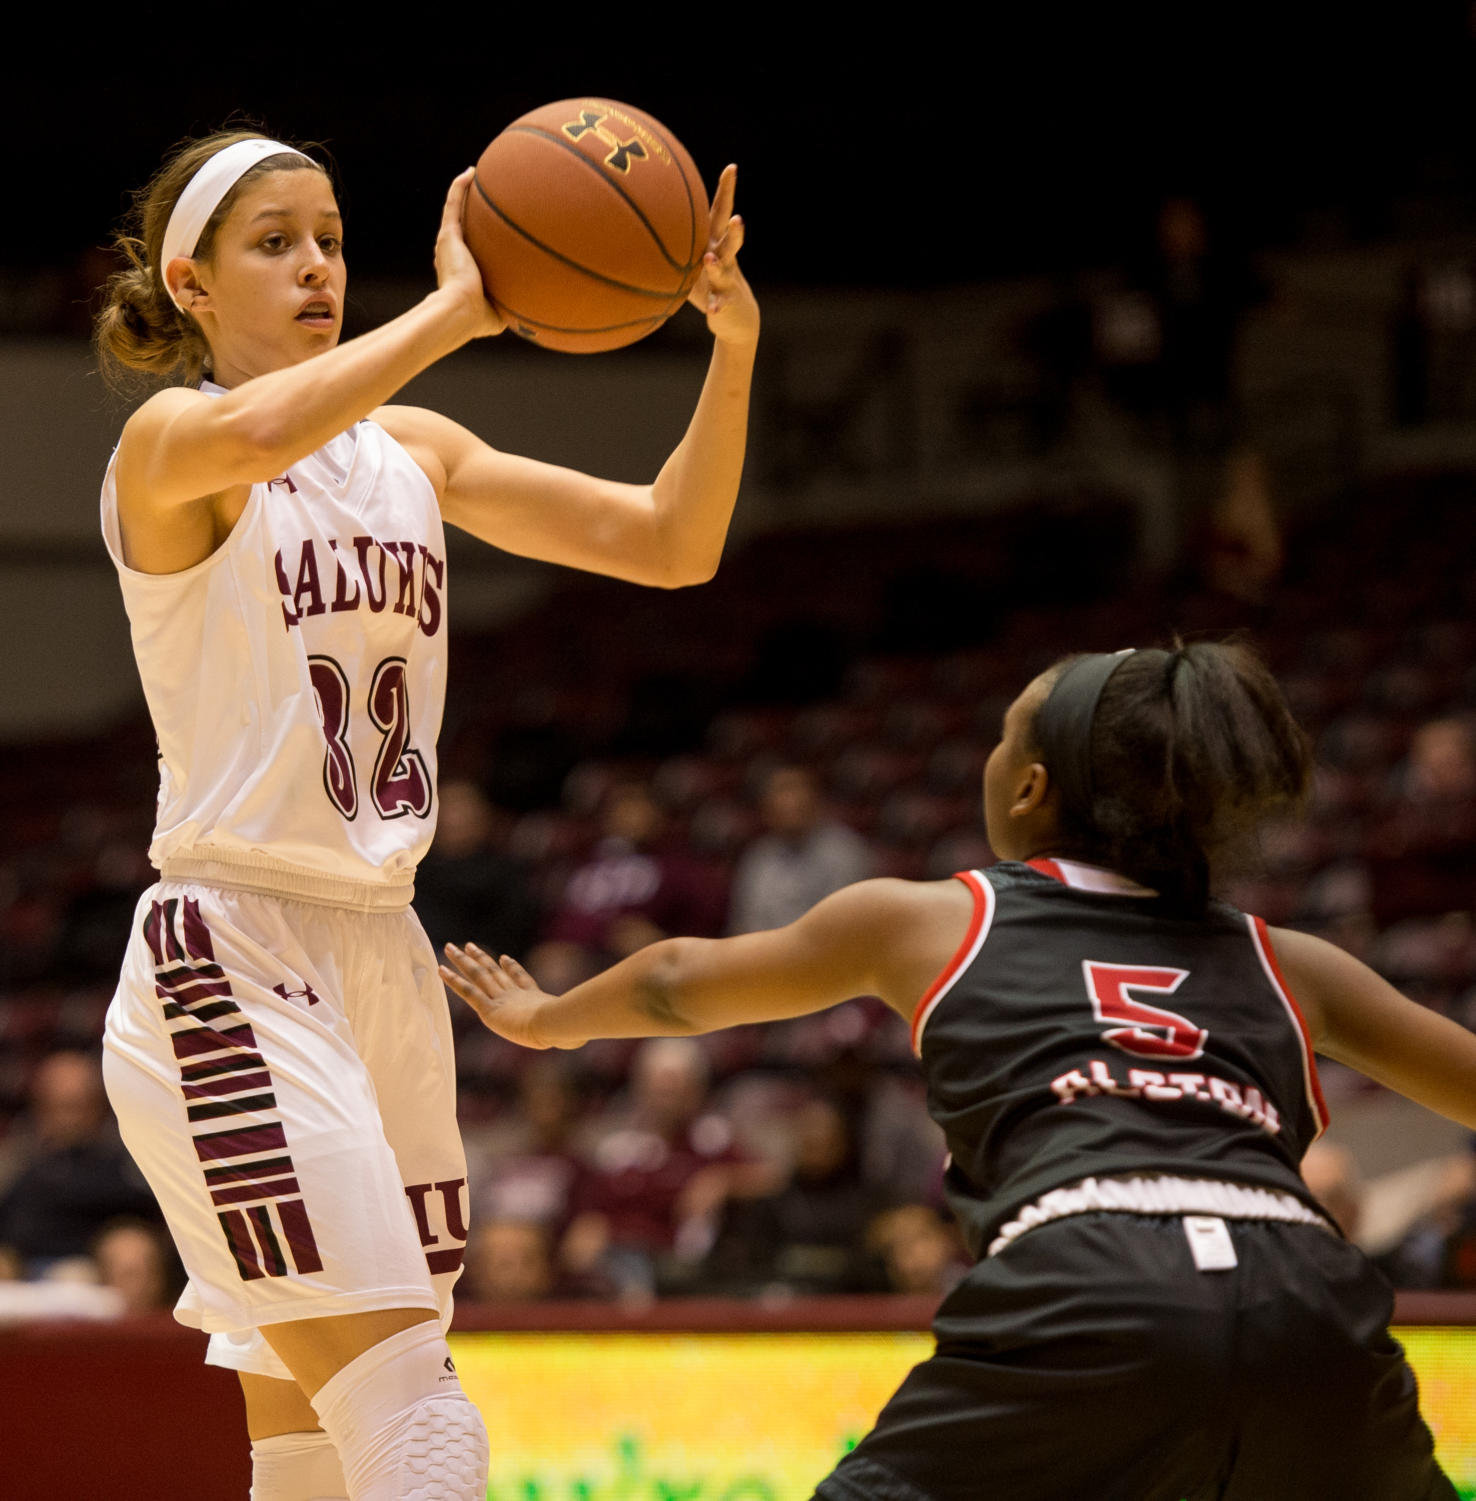 Senior+guard+Kylie+Giebelhausen+defends+the+ball+from+SIUE%27s+Jay%27Nee+Alston+Monday%2C+Nov.+27%2C+2017%2C+during+the+Salukis%27+57-53+loss+to+the+SIU+Edwardsville+Cougars+at+SIU+Arena.+%28Brian+Mu%C3%B1oz+%7C+%40BrianMMunoz%29